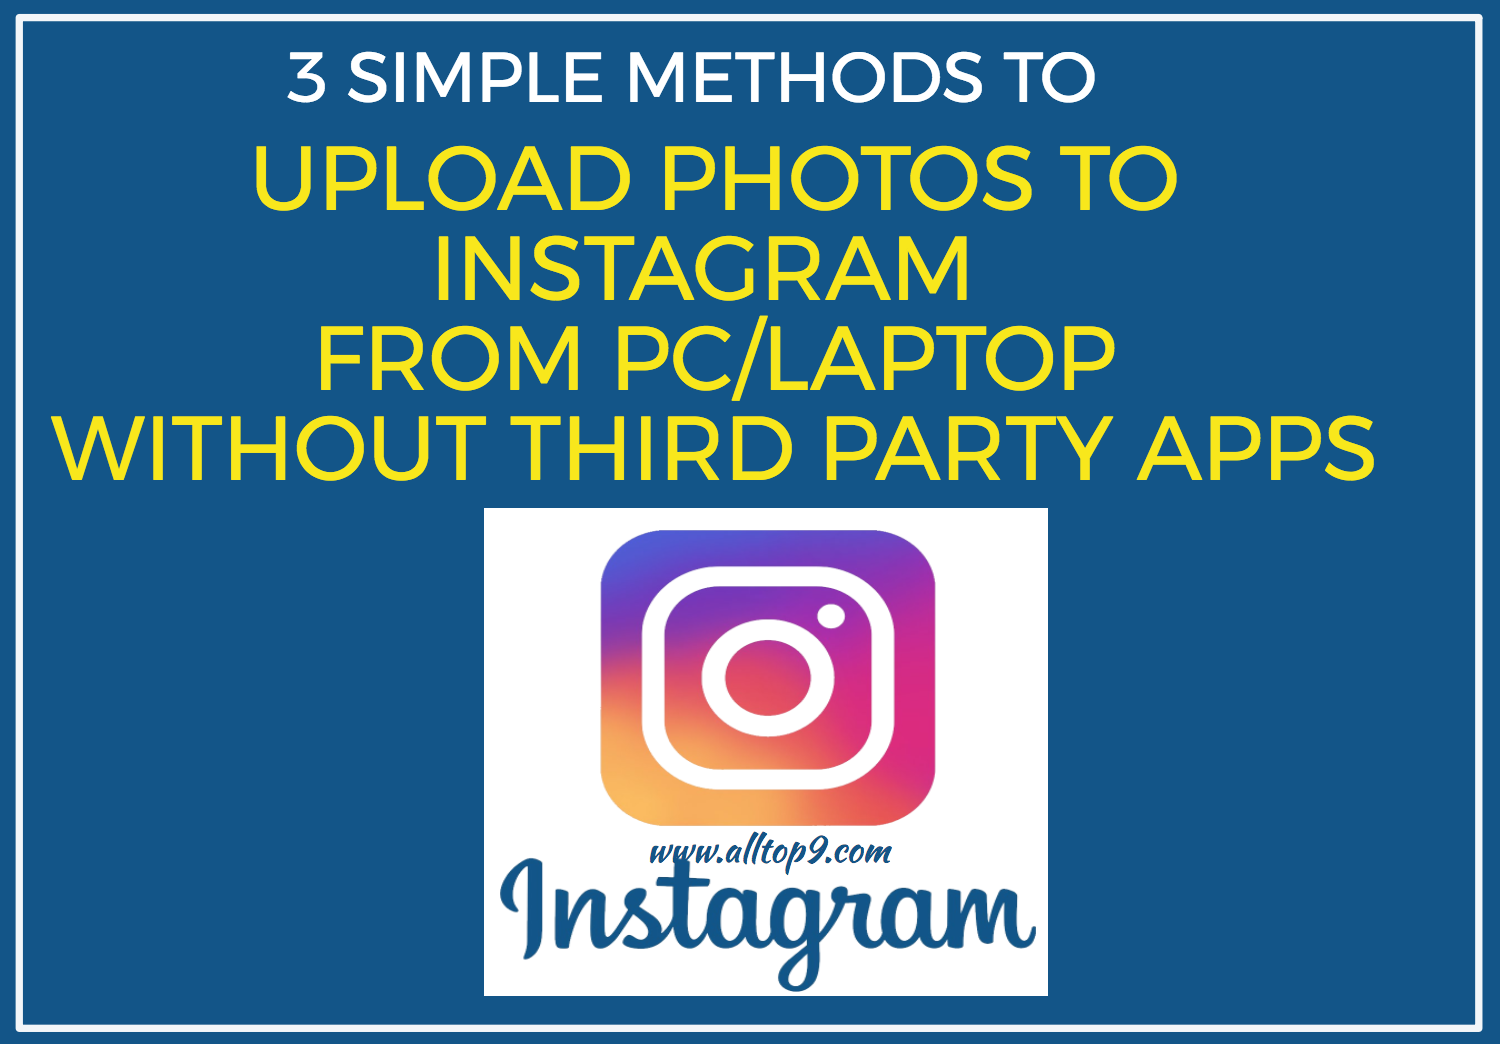 upload-photos-to-instagram-from-pc-computer-laptop-from-instagra-com-website-without-using-third-party-apps